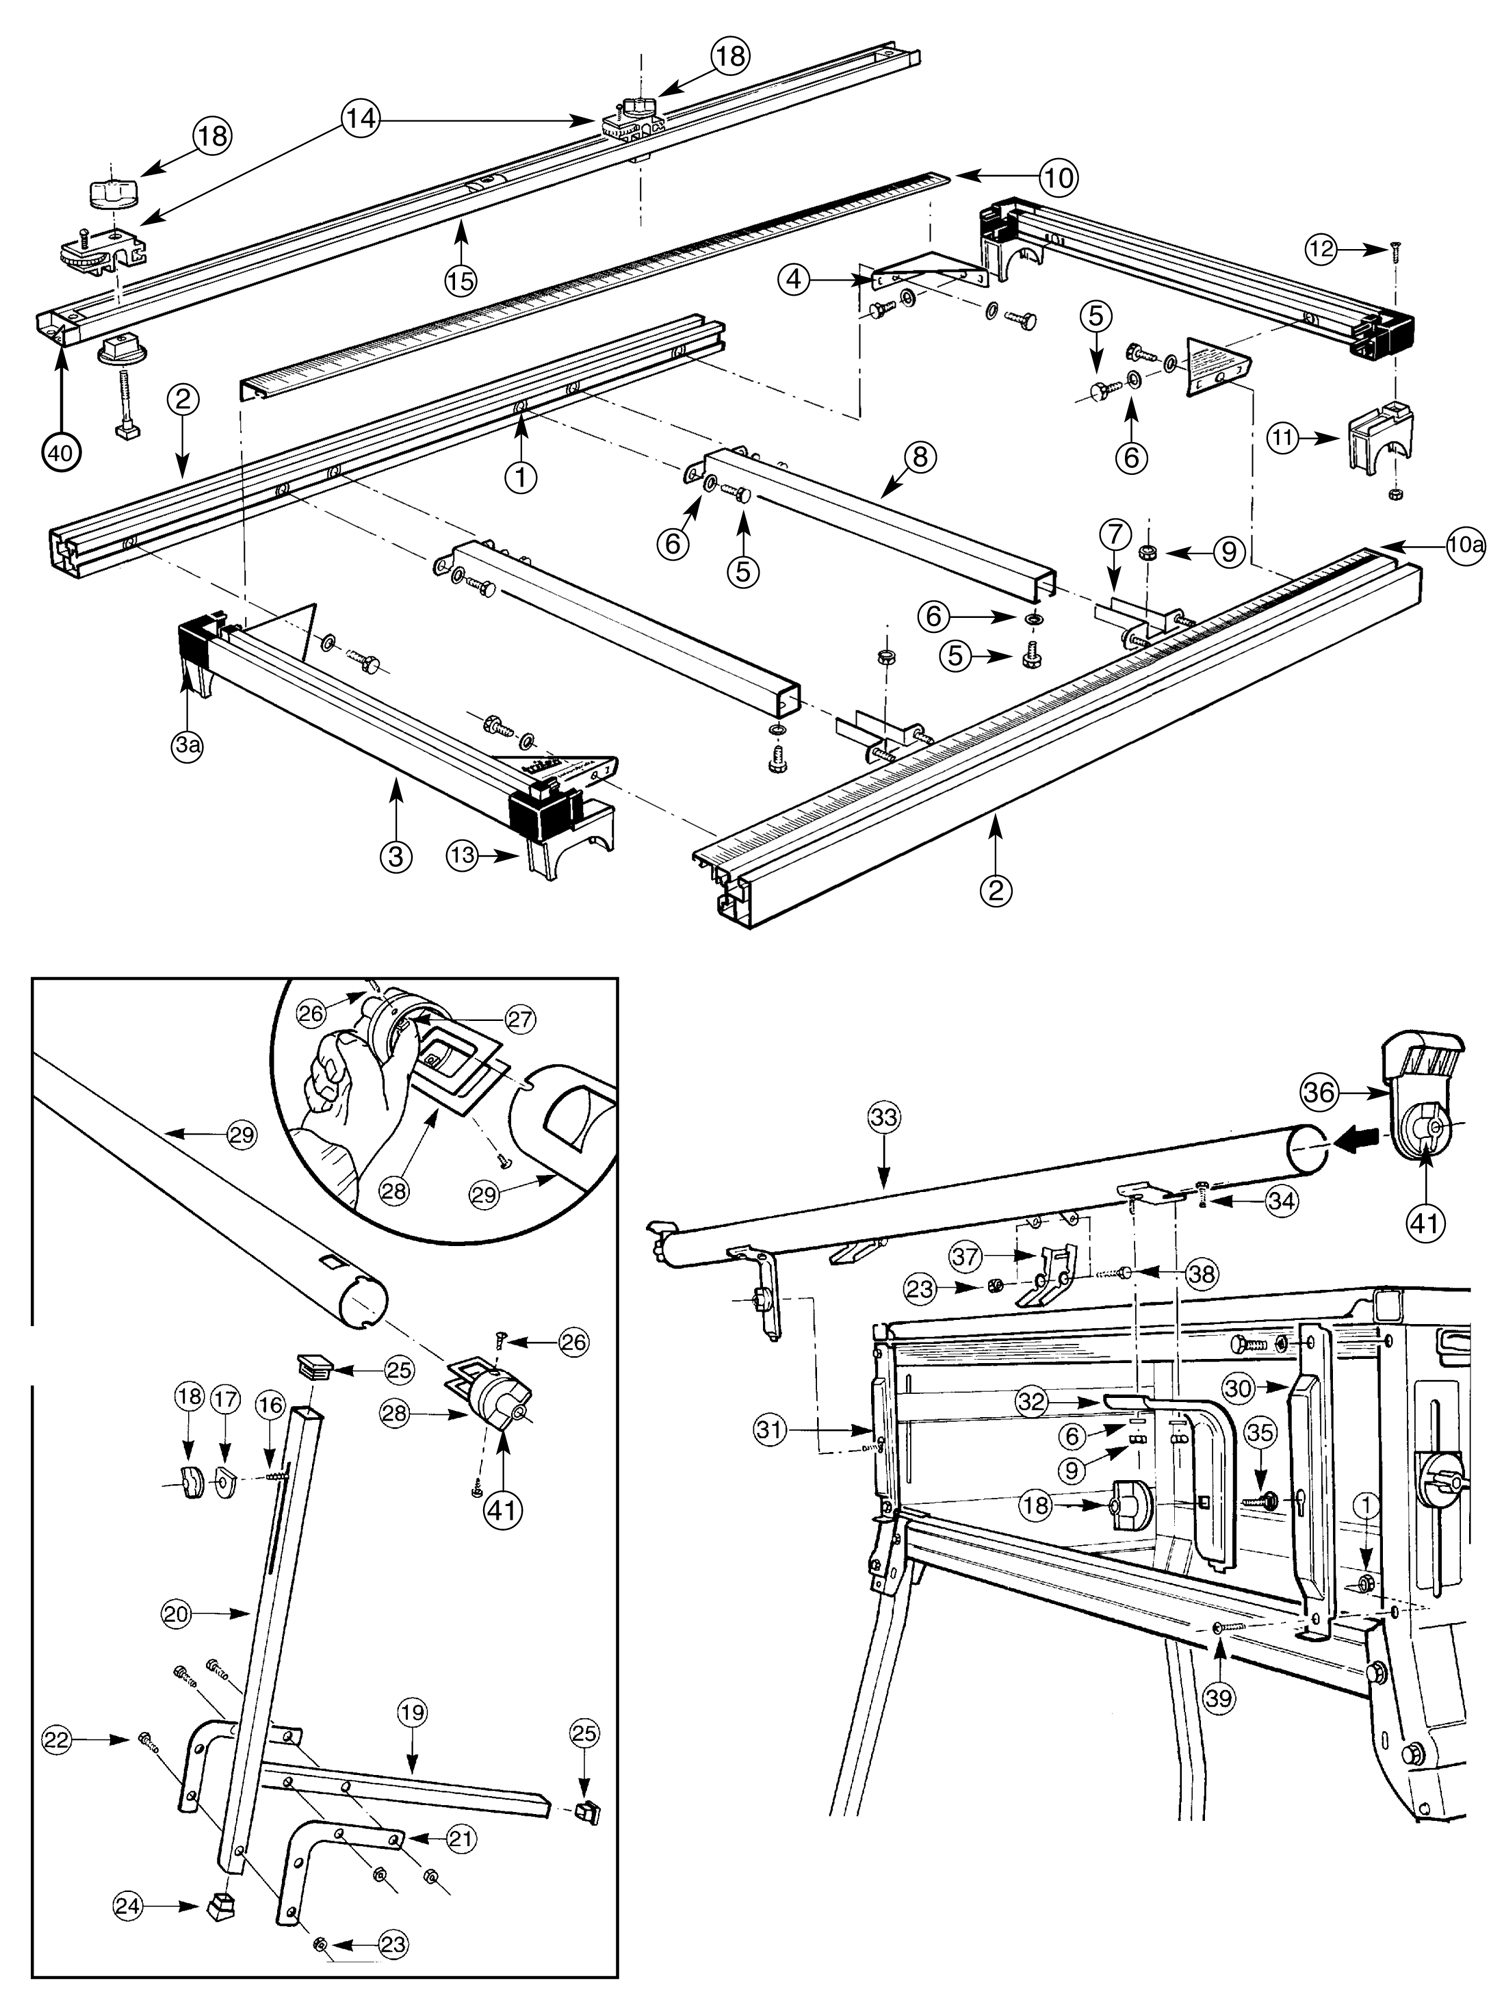 Tool Spares Online Maxi Sliding Extension Table